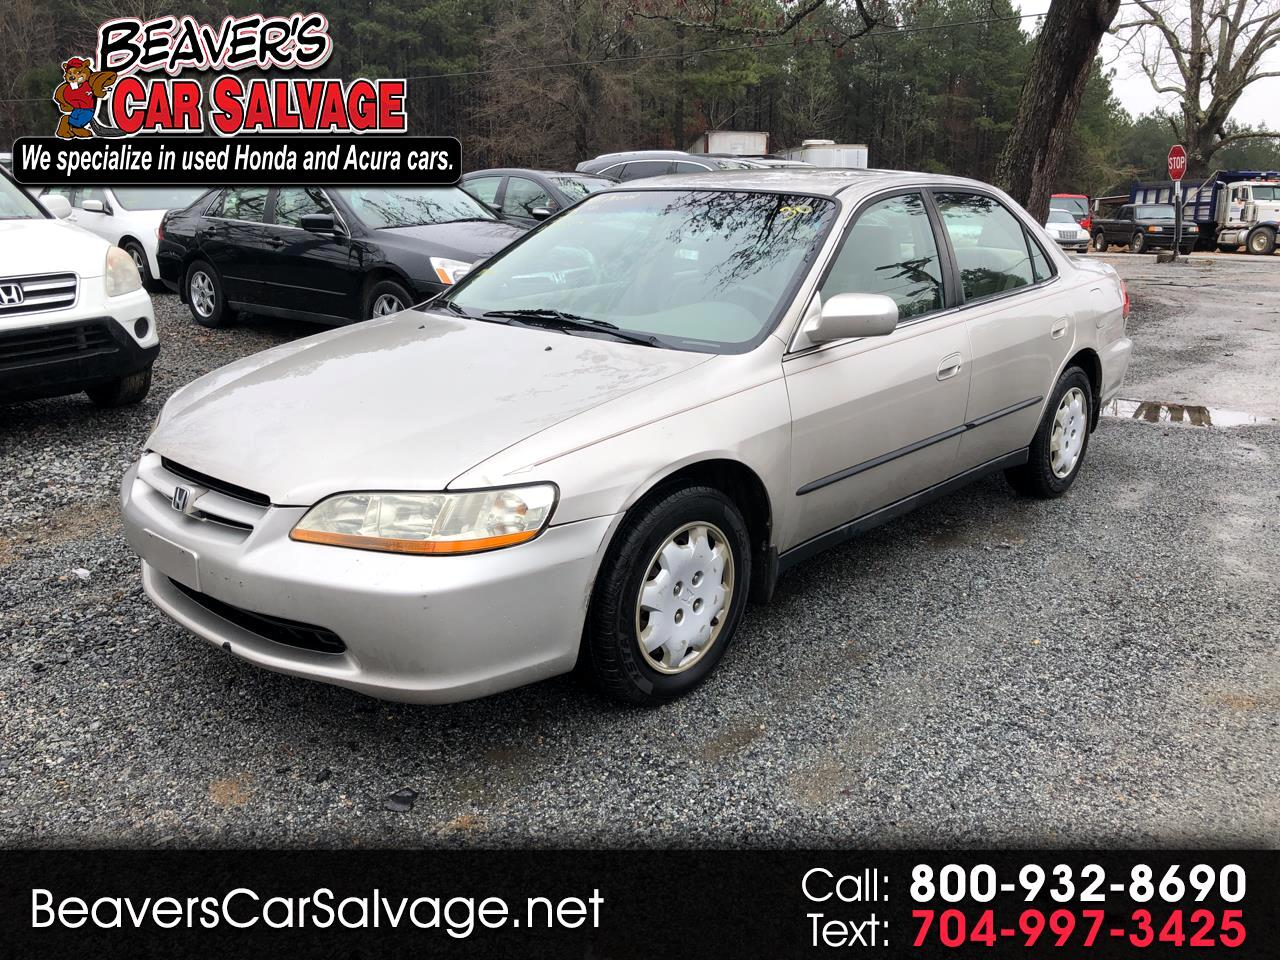 1998 Honda Accord Sedan 4dr I4 Man LX